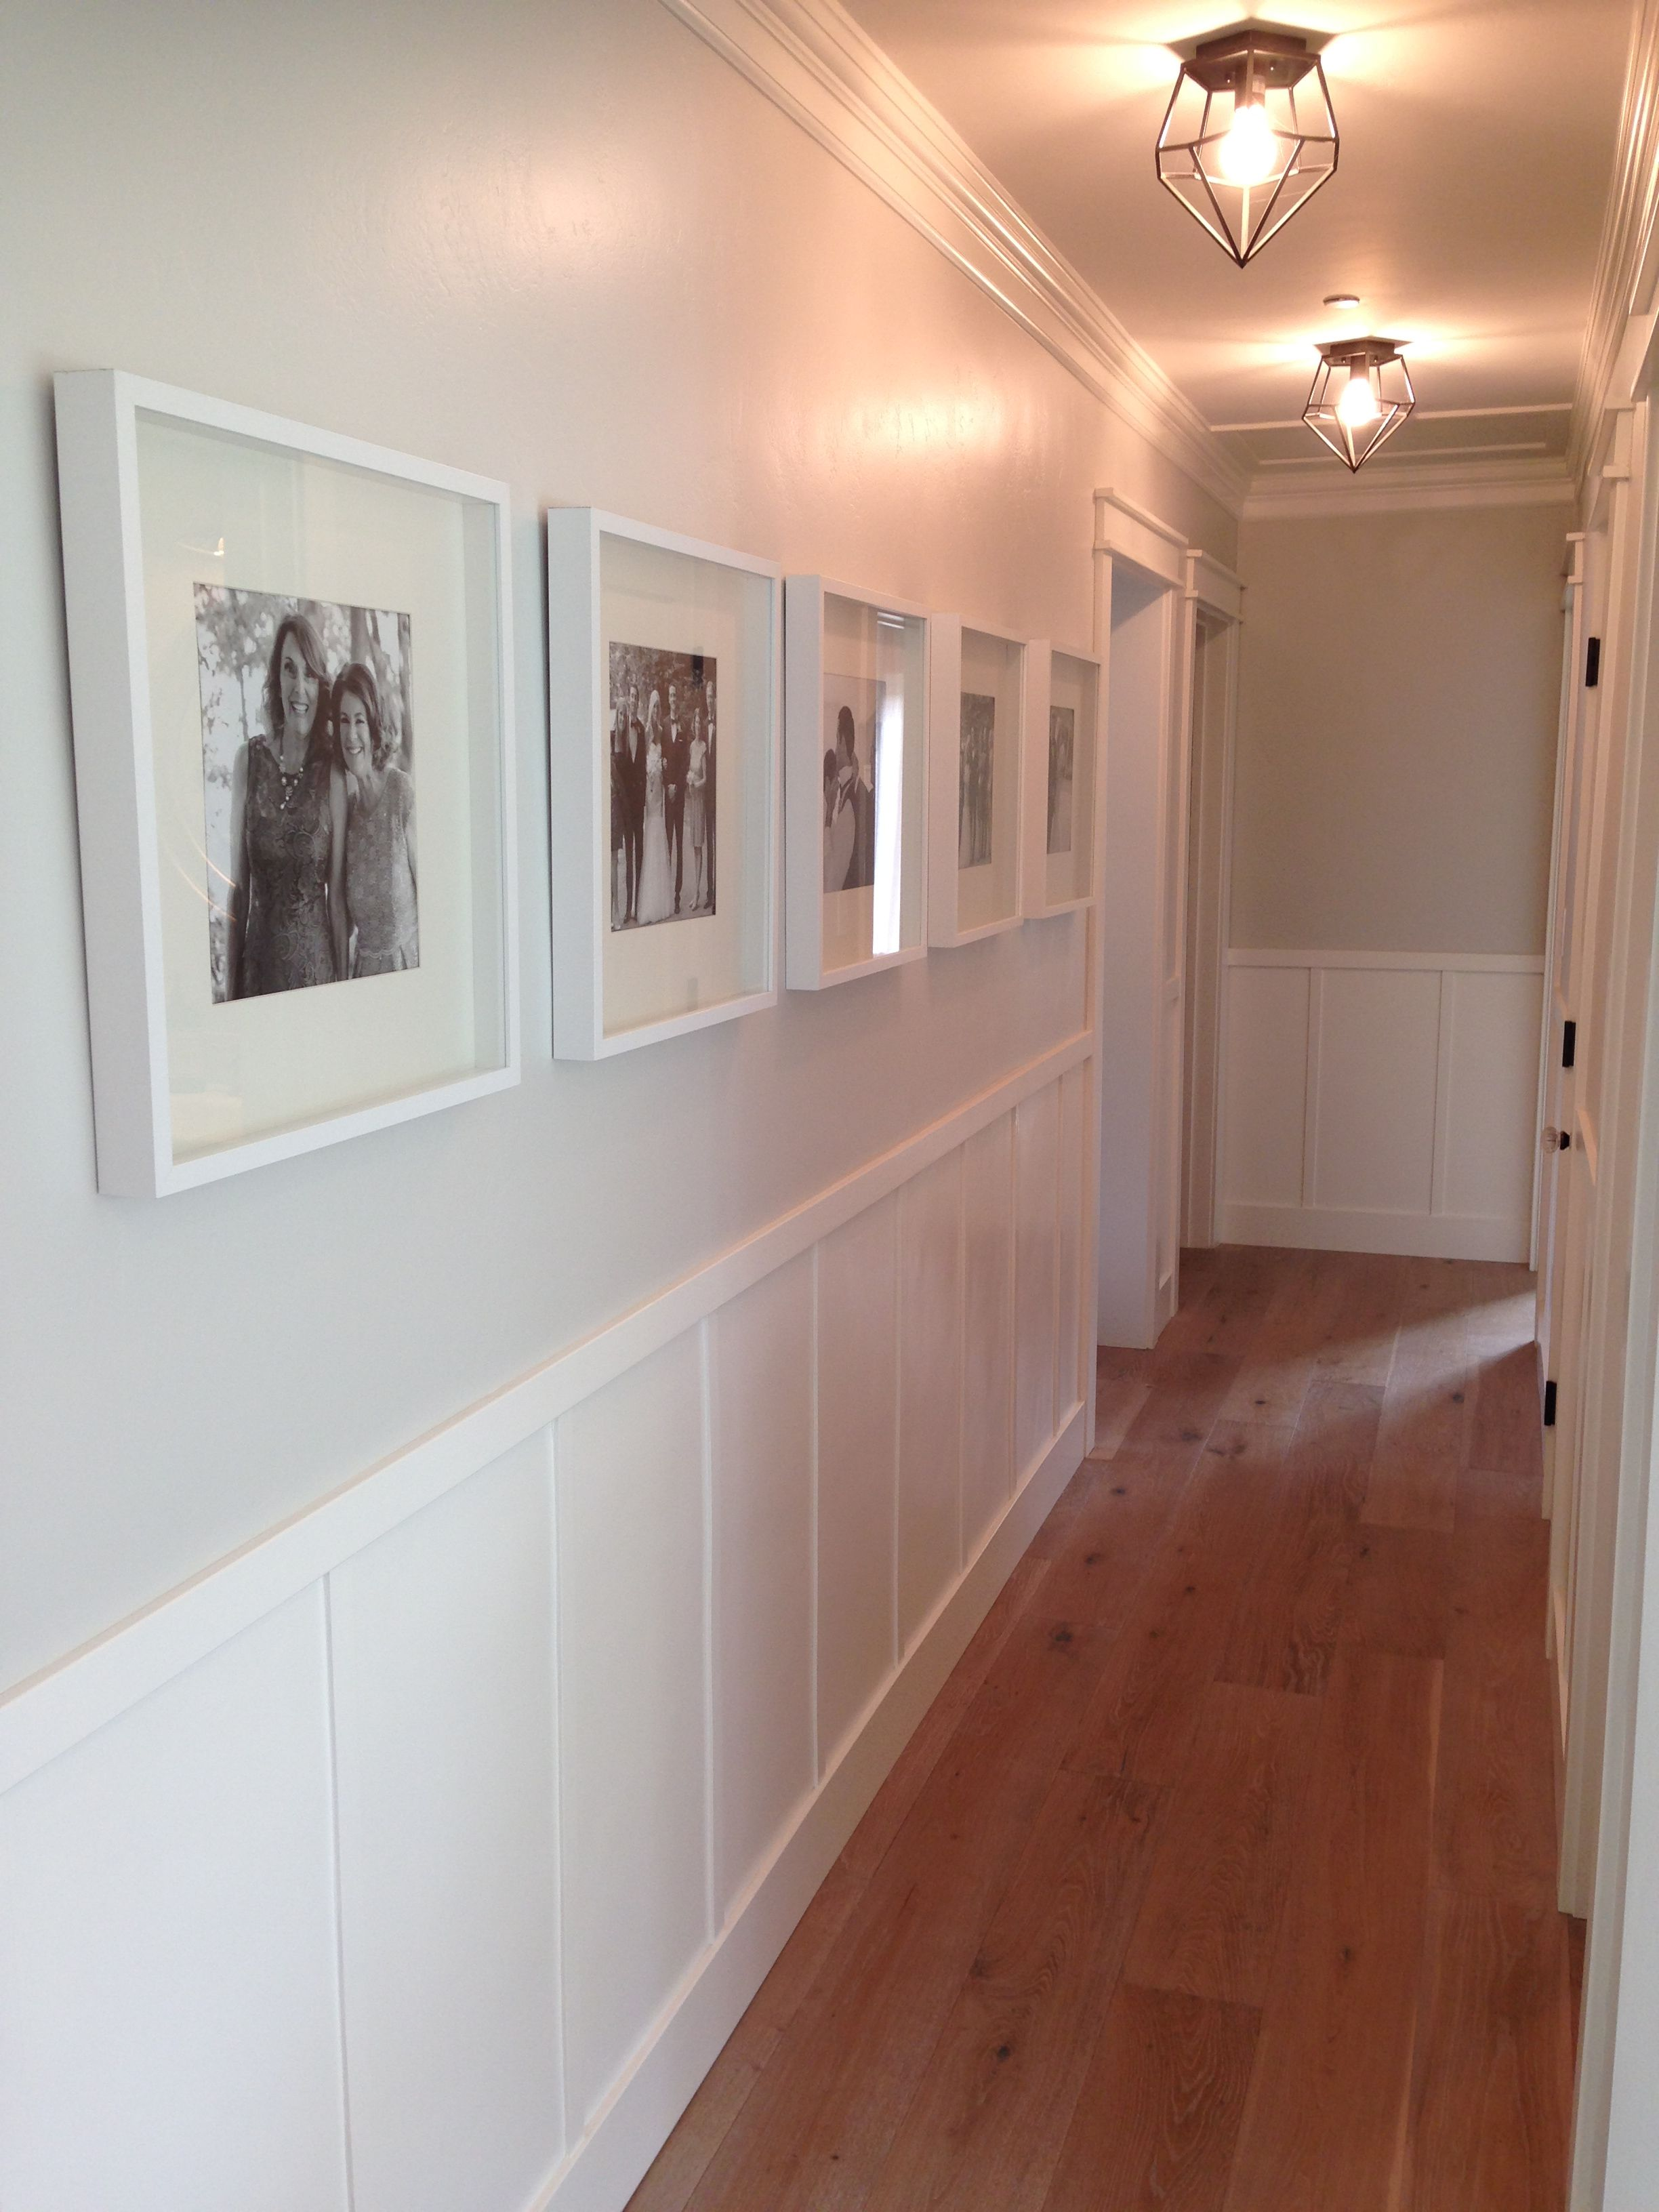 Ikea White Ribba Frames In Hallway Gallery Wall With Board